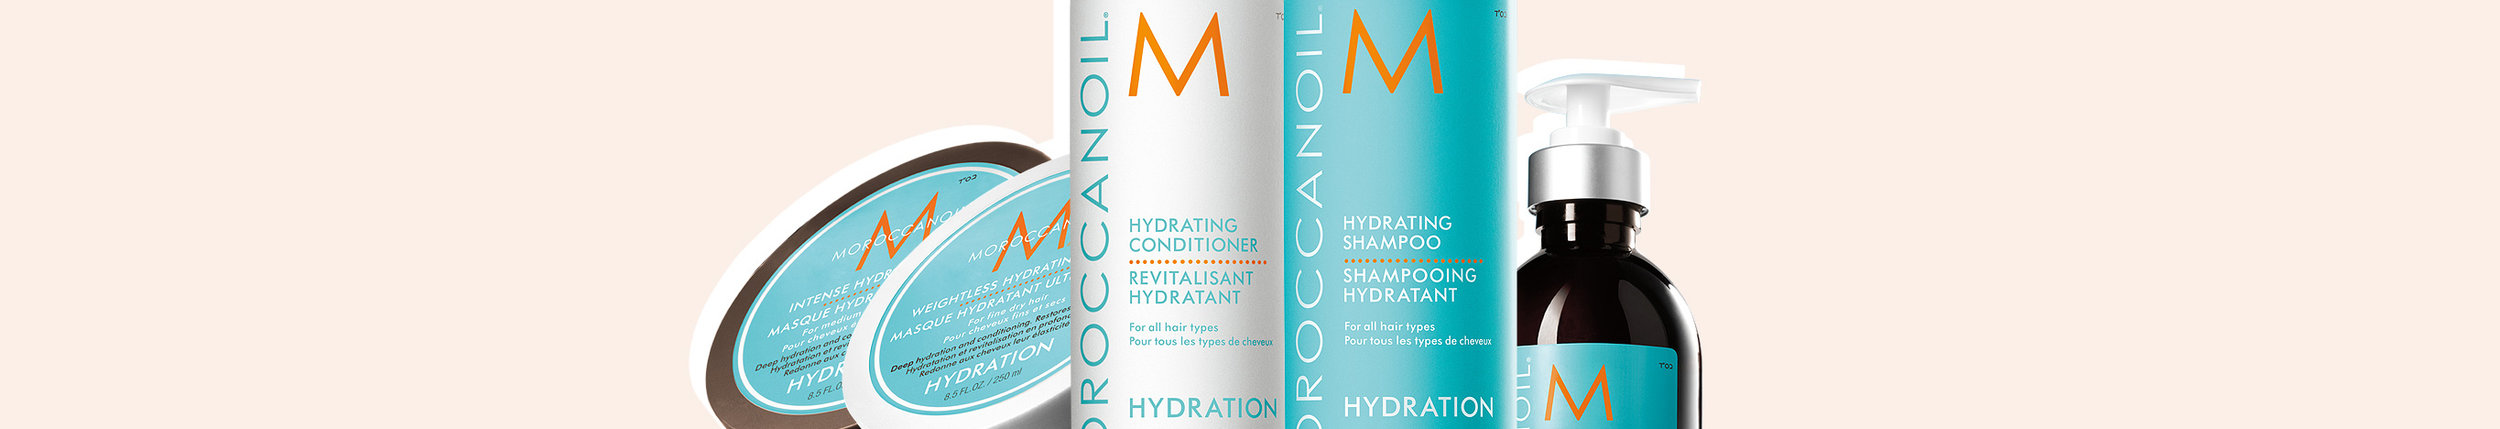 HYDRATION COLLECTION - For normal to dry hair, advanced replenishing nutrients deeply hydrate hair while maintaining its natural moisture balance.